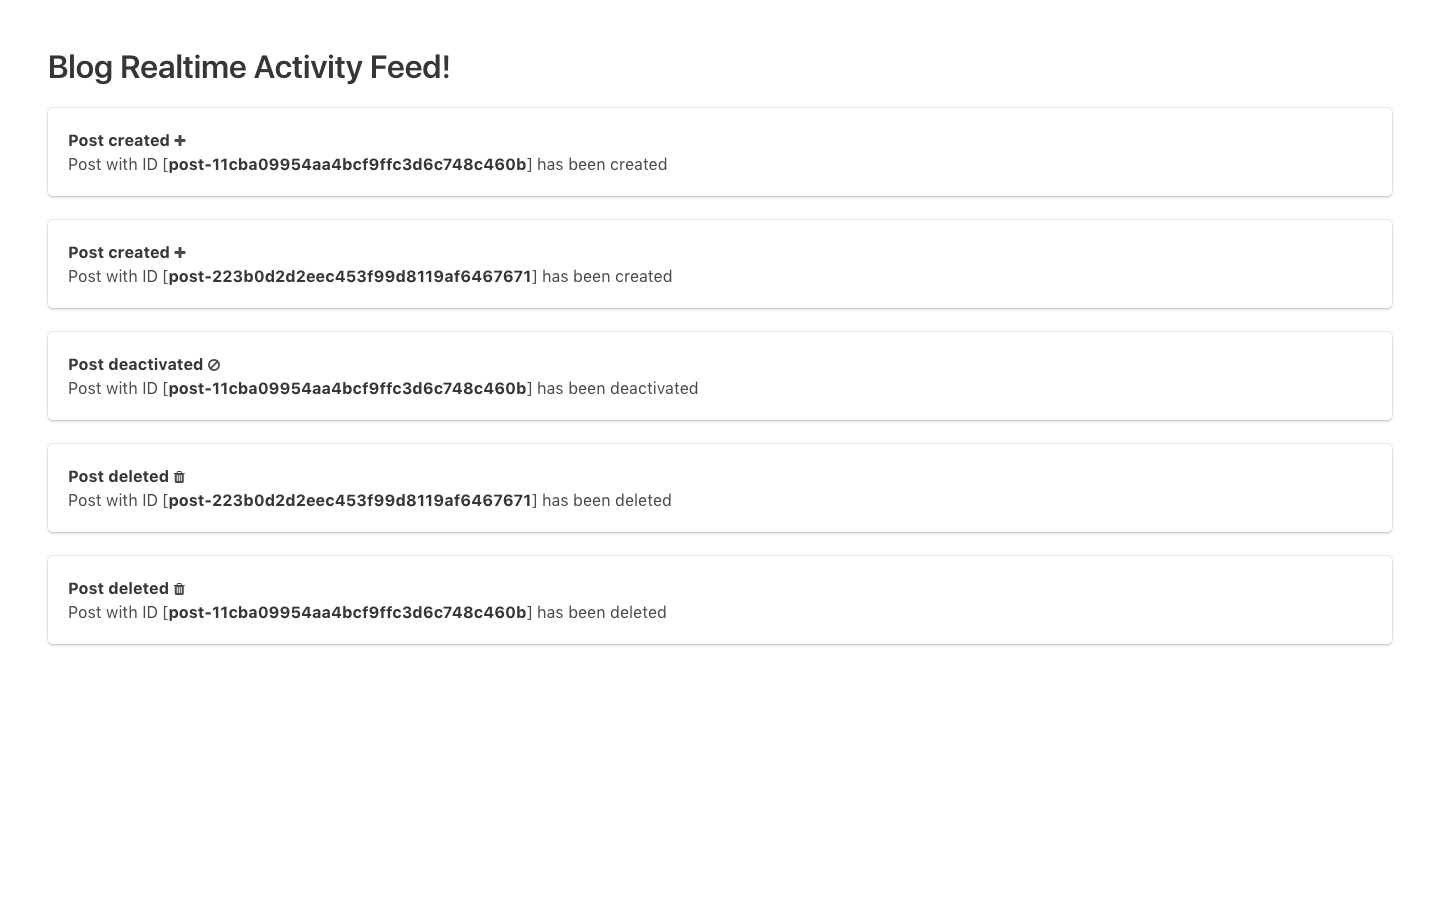 activity-feed-flask-post-created